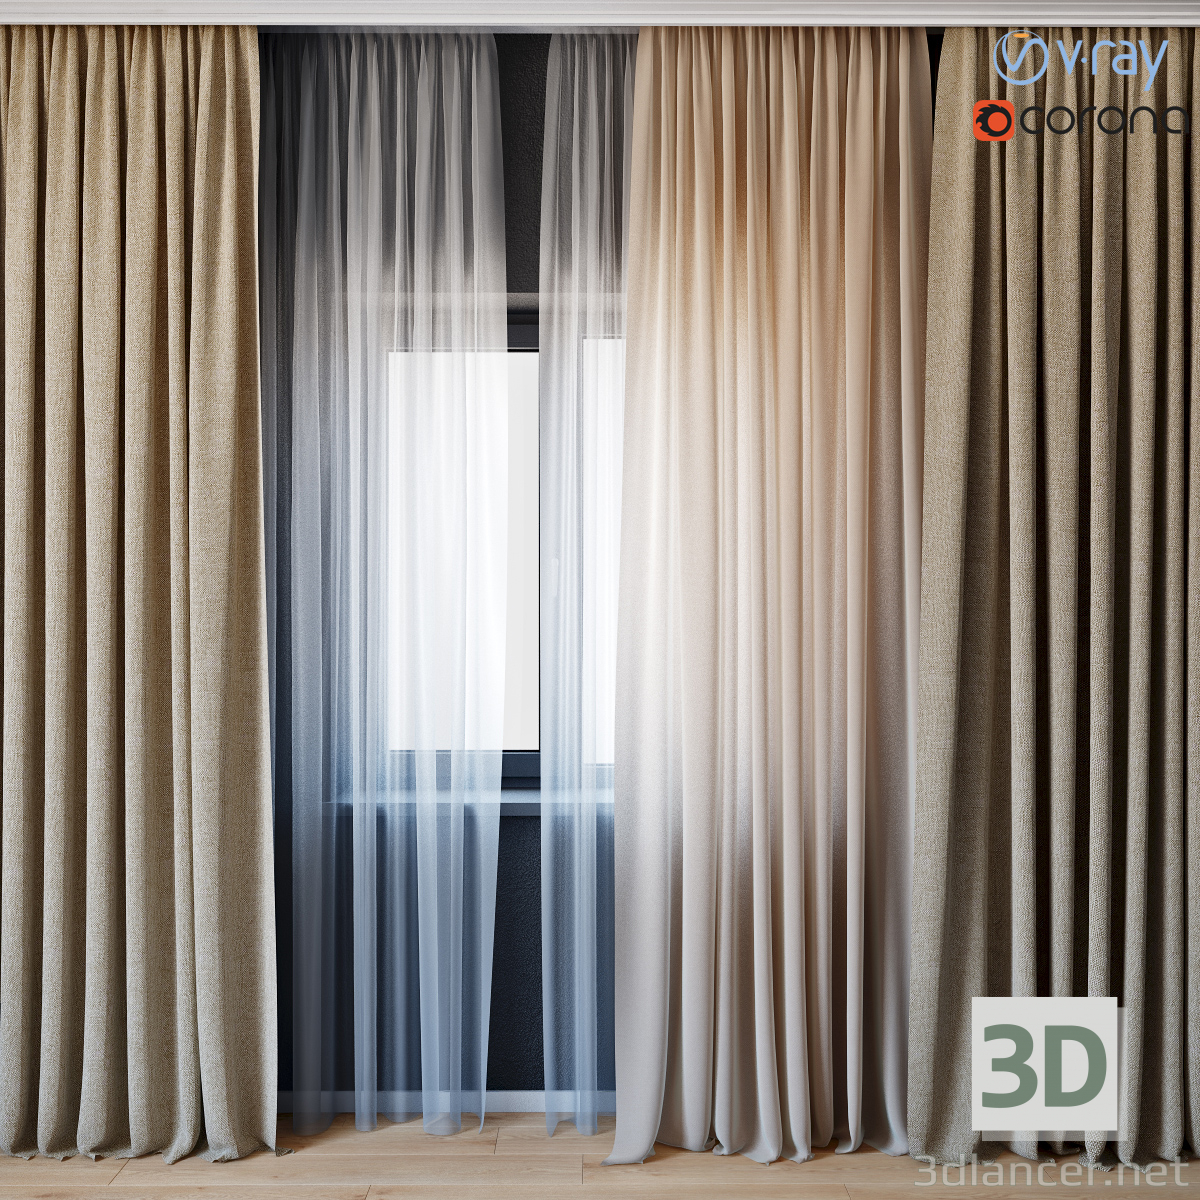 3D-Model Curtains with tulle set 01